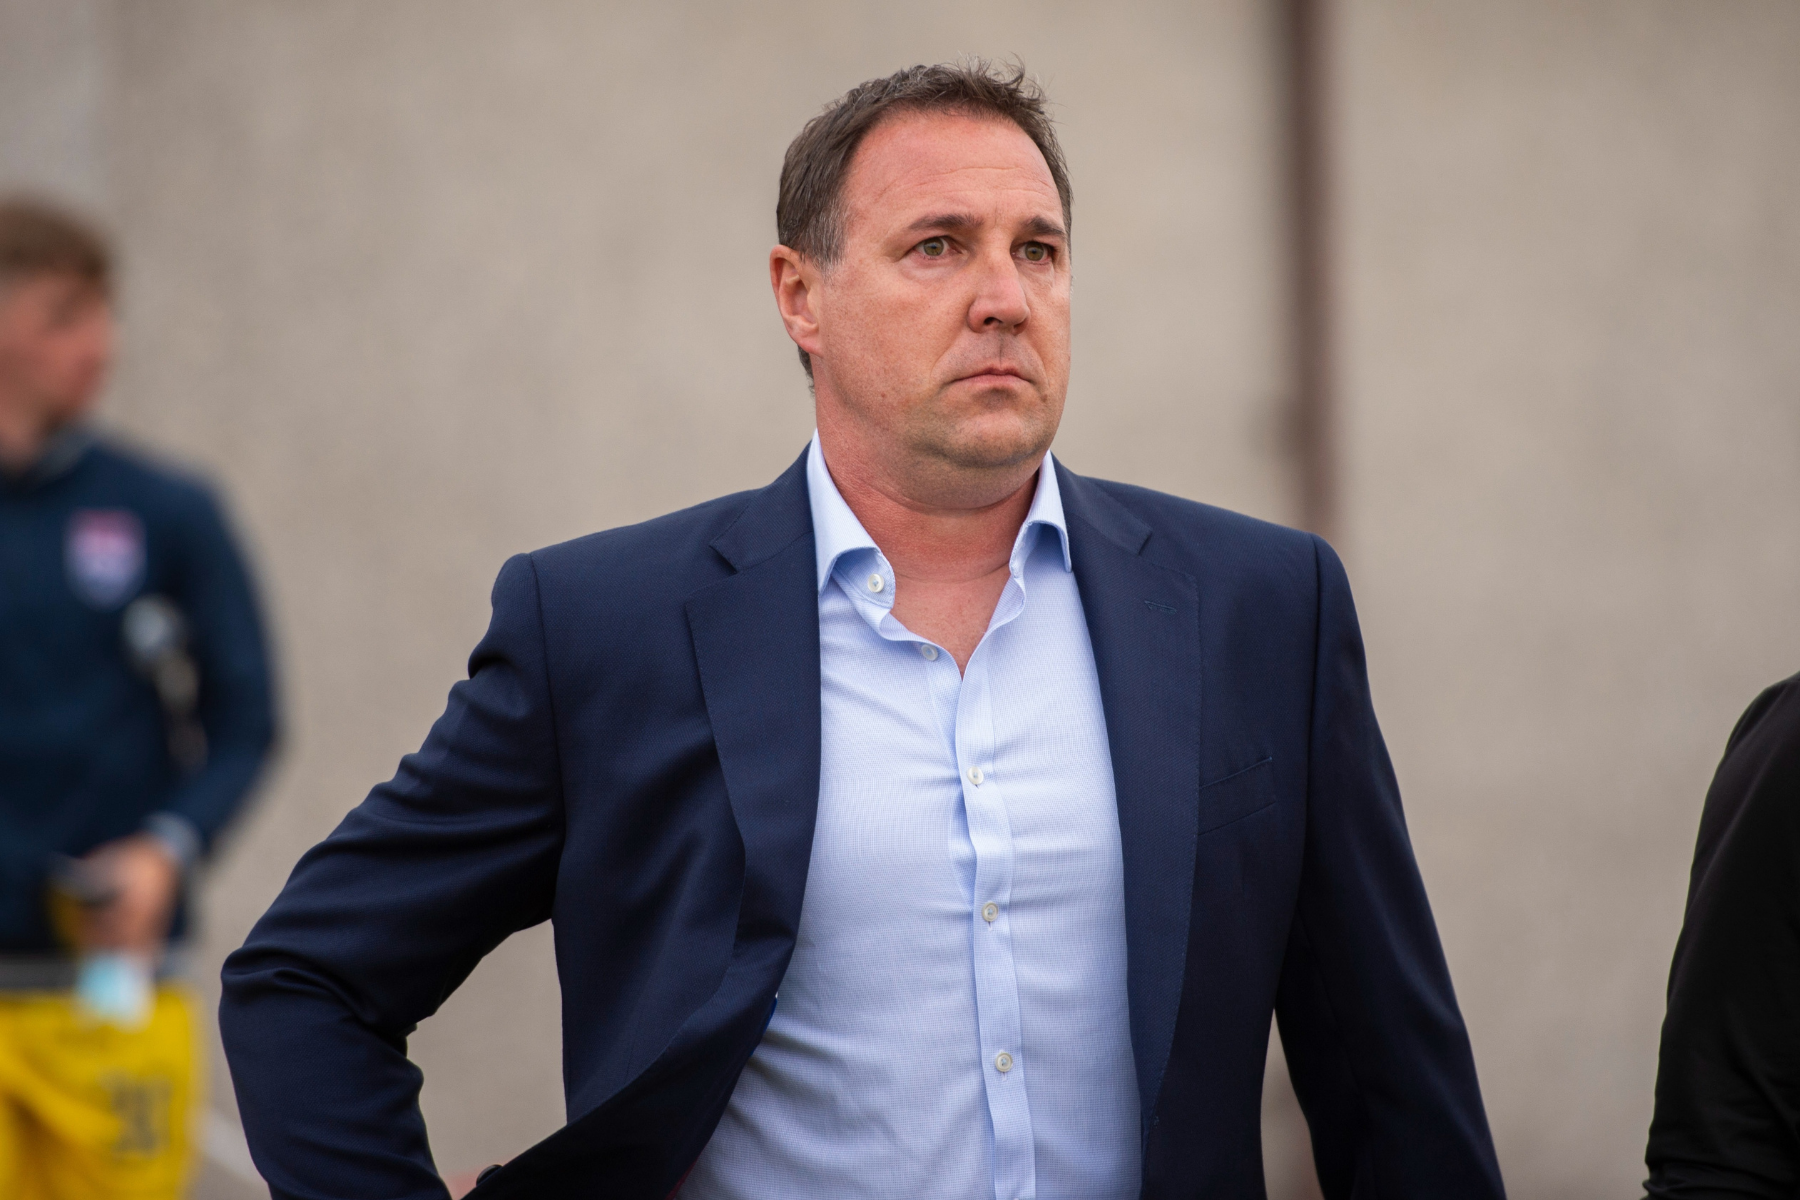 Ross County 2021/22 preview: Malky Mackay faces tough task in opening season as Staggies boss